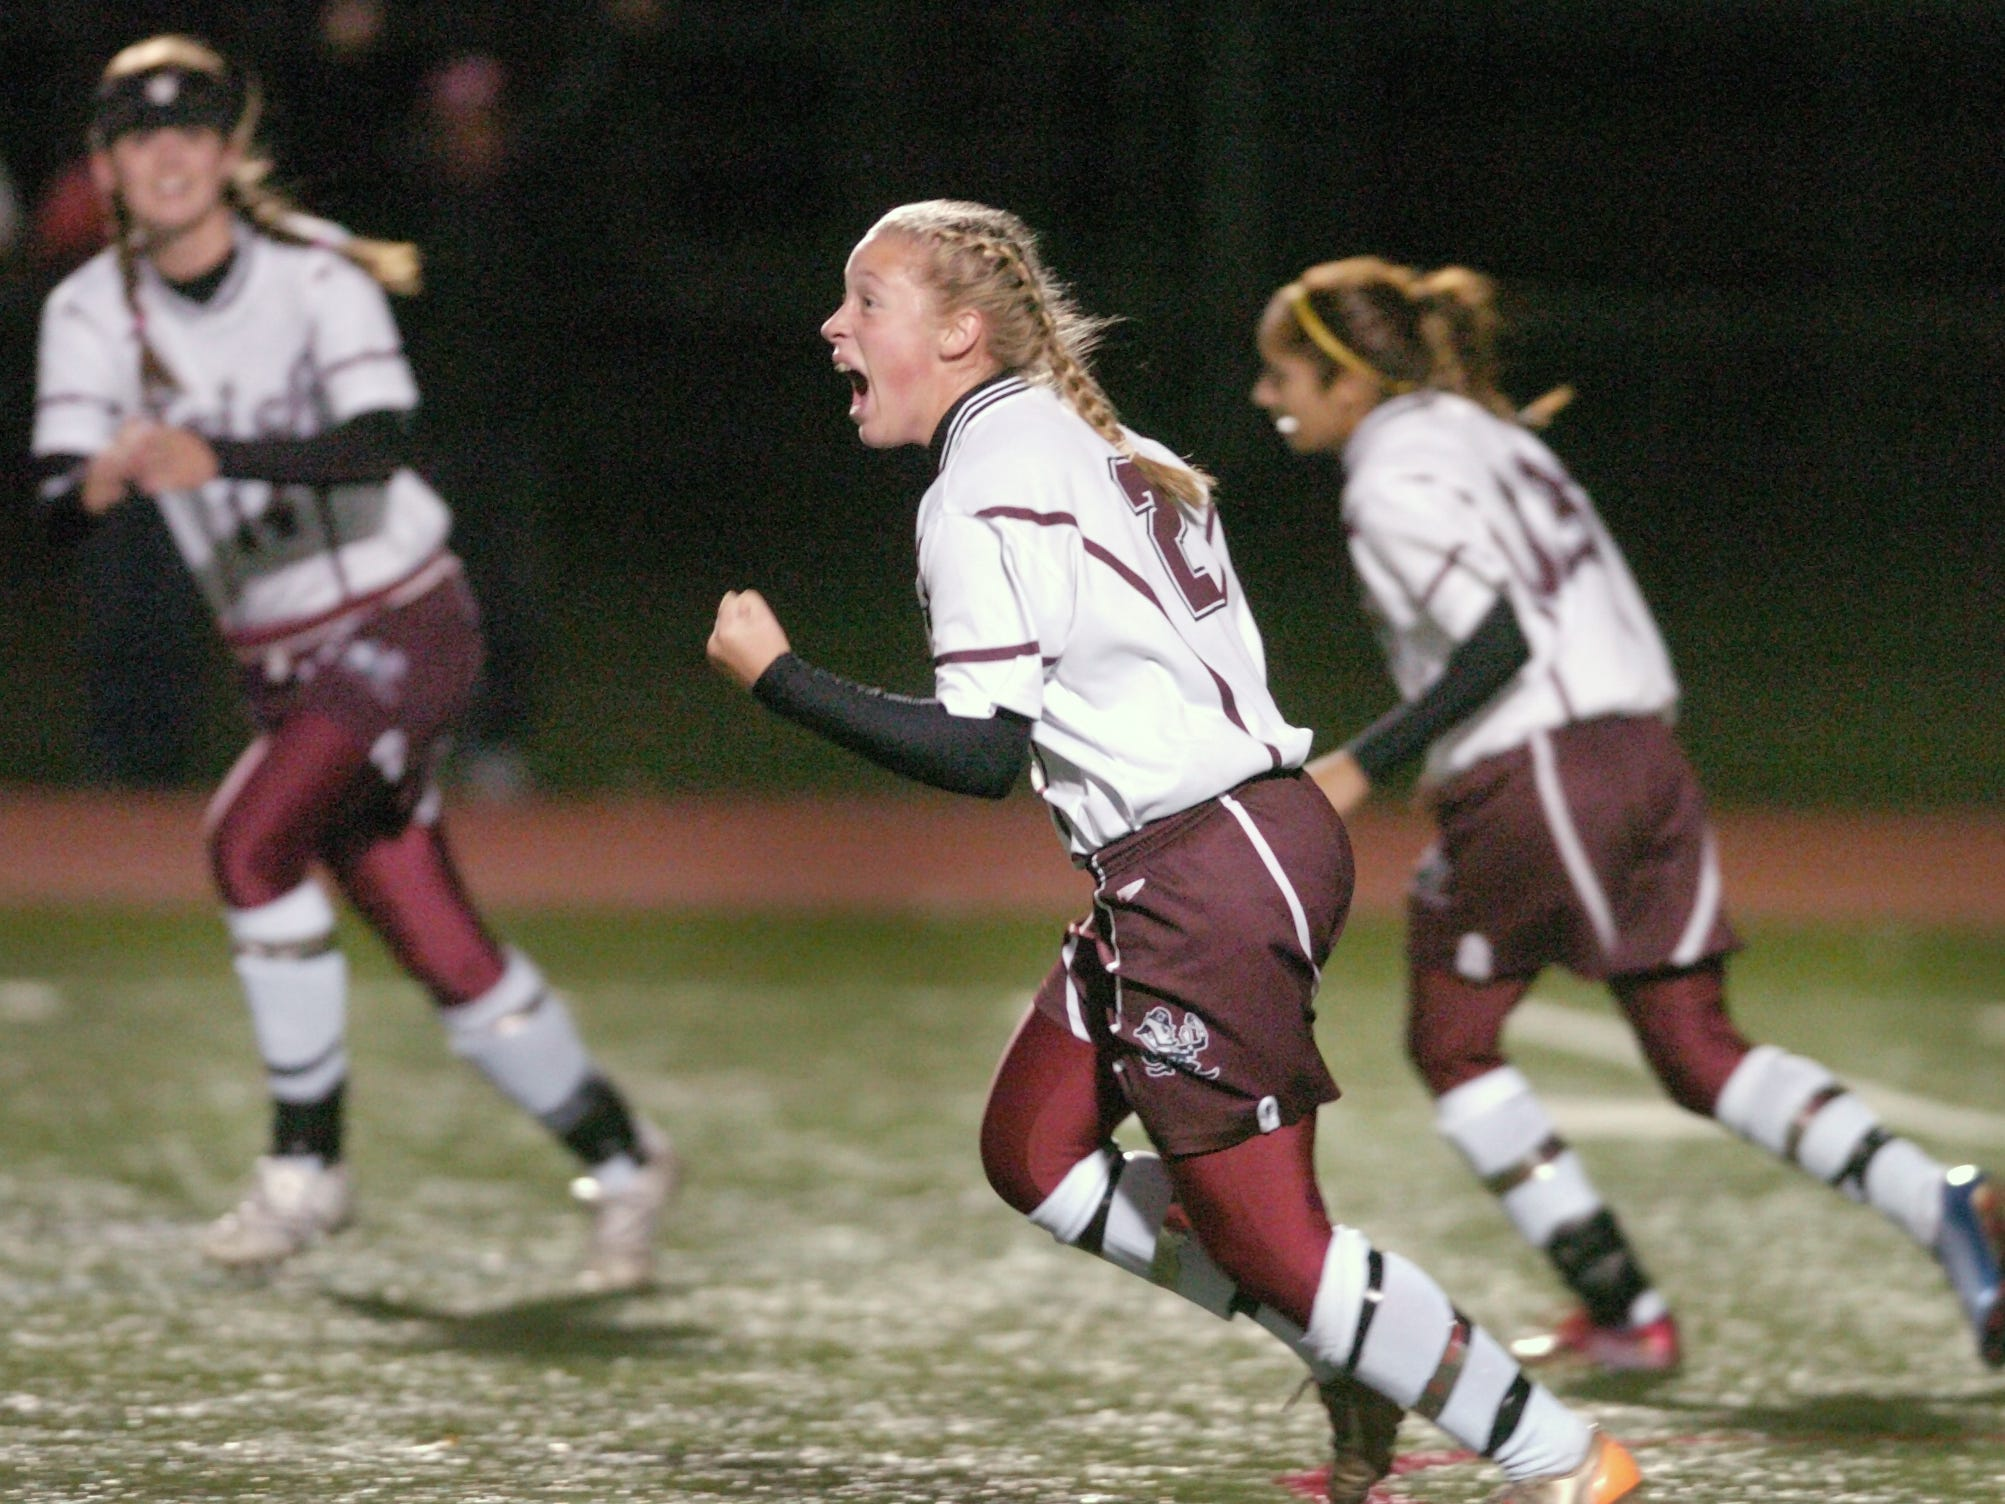 Aquinas'  Ashley Hughes,  front, reacts to her first goal in the first half against Greece Athena in the Section V Class AA semifinal soccer game. Hughes also scored on a penalty kick on Oct. 31, 2007